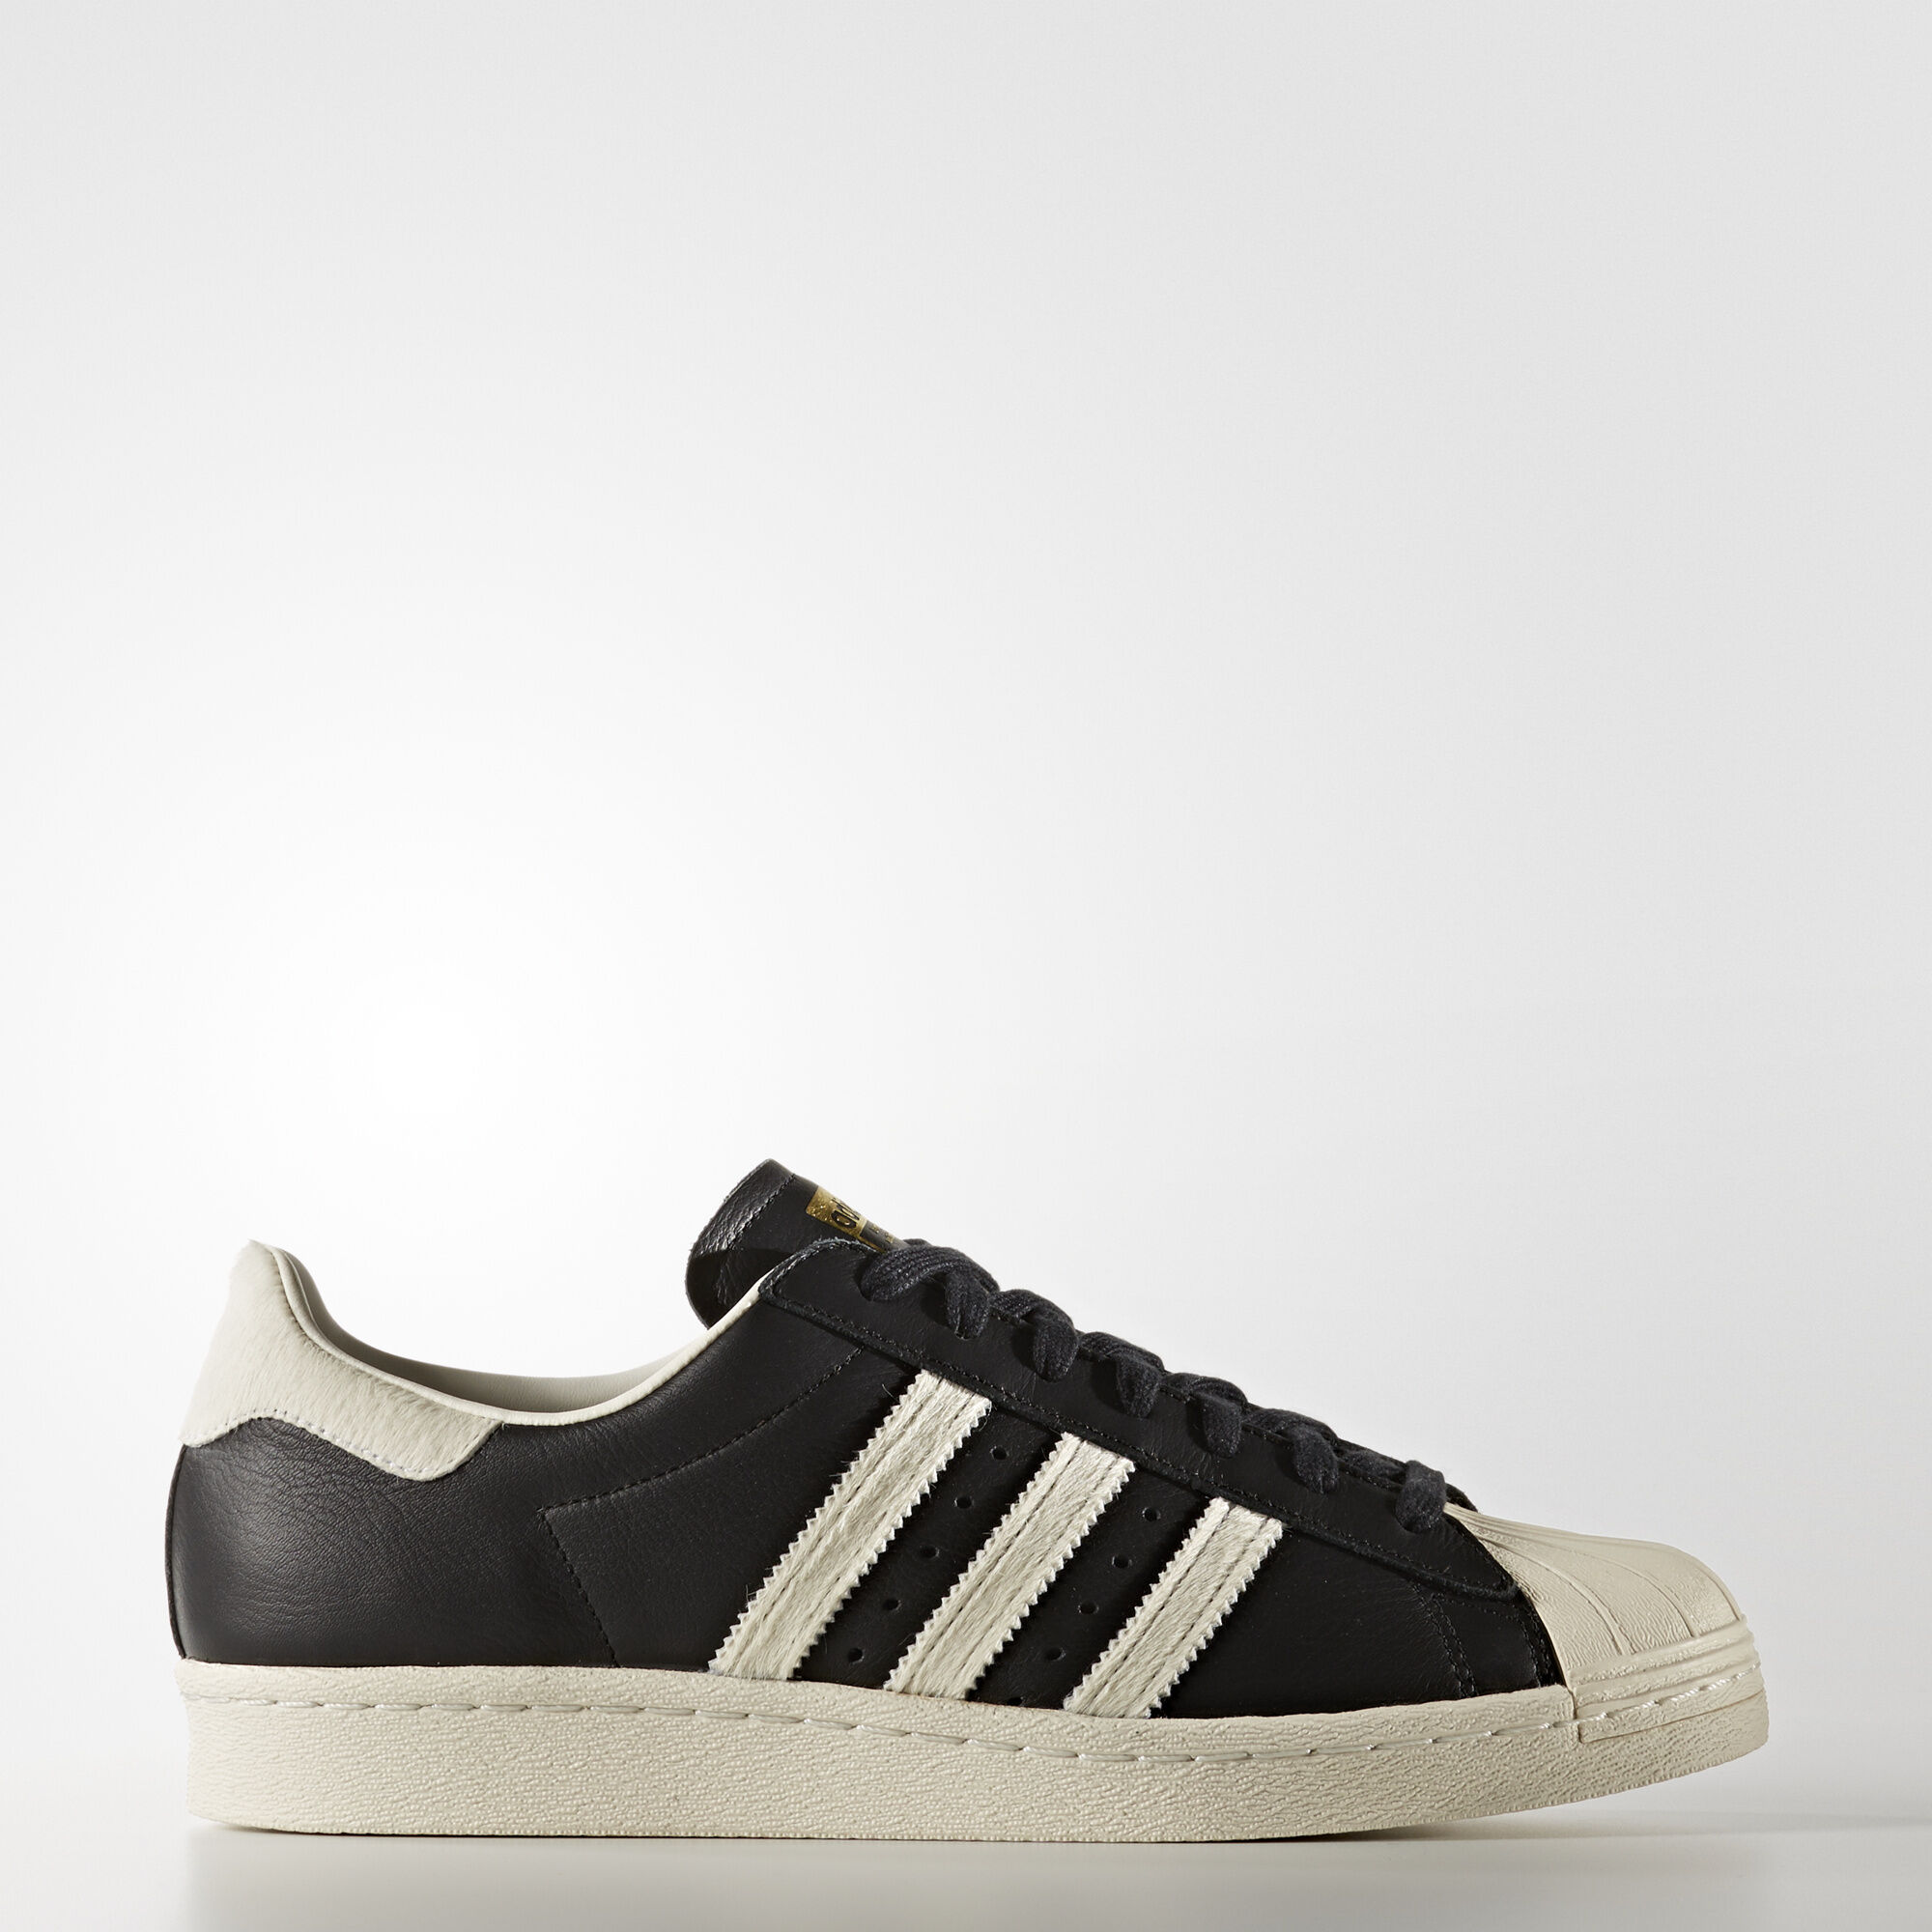 ADIDAS SUPERSTAR 80S DLX (WHITE/GUM)/ SNEAKERS T